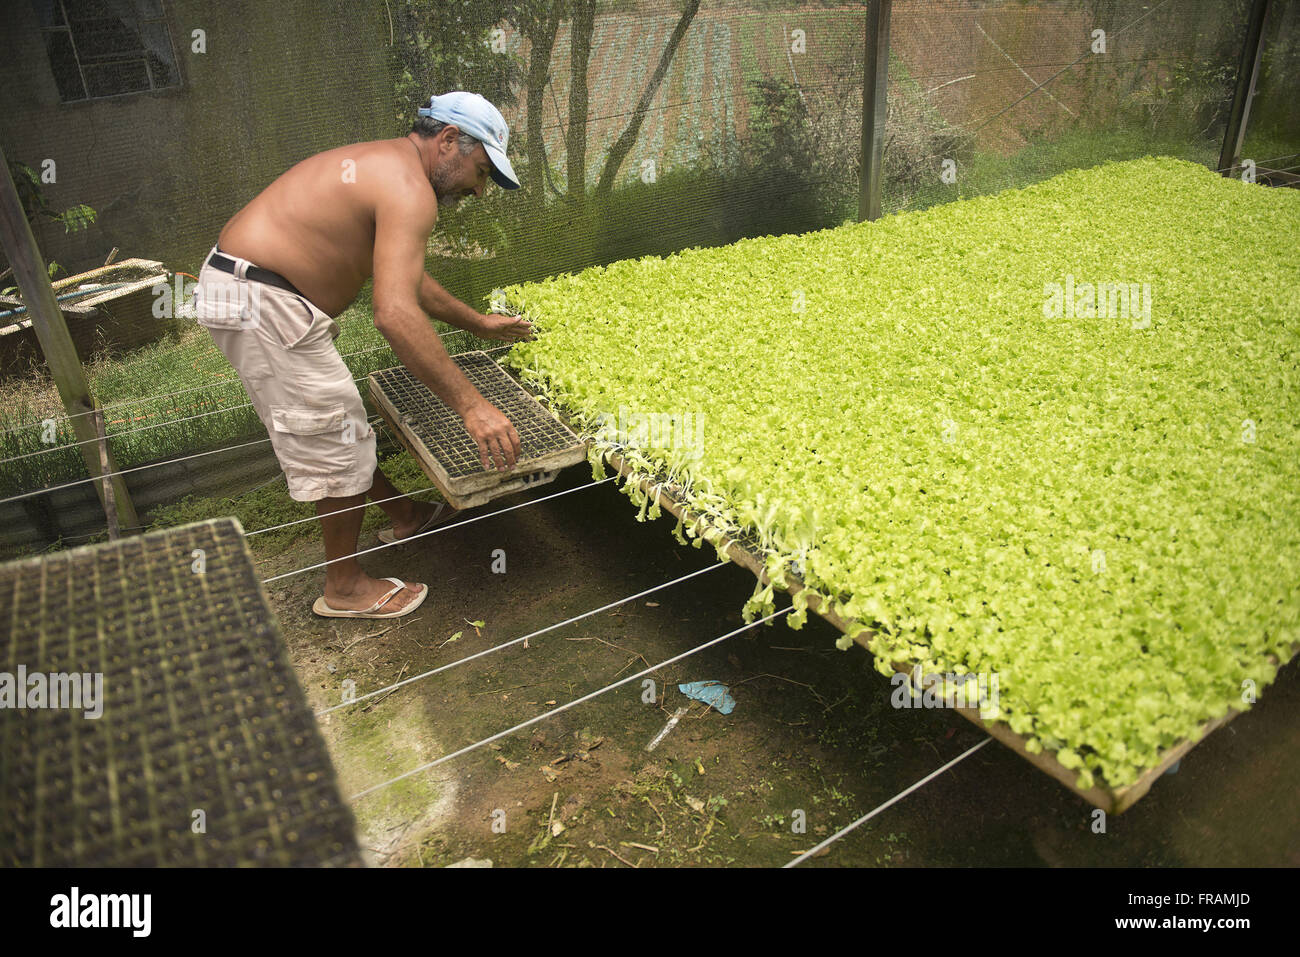 Farmer sleeps germinated seeds for greenhouse vegetables - Stock Image